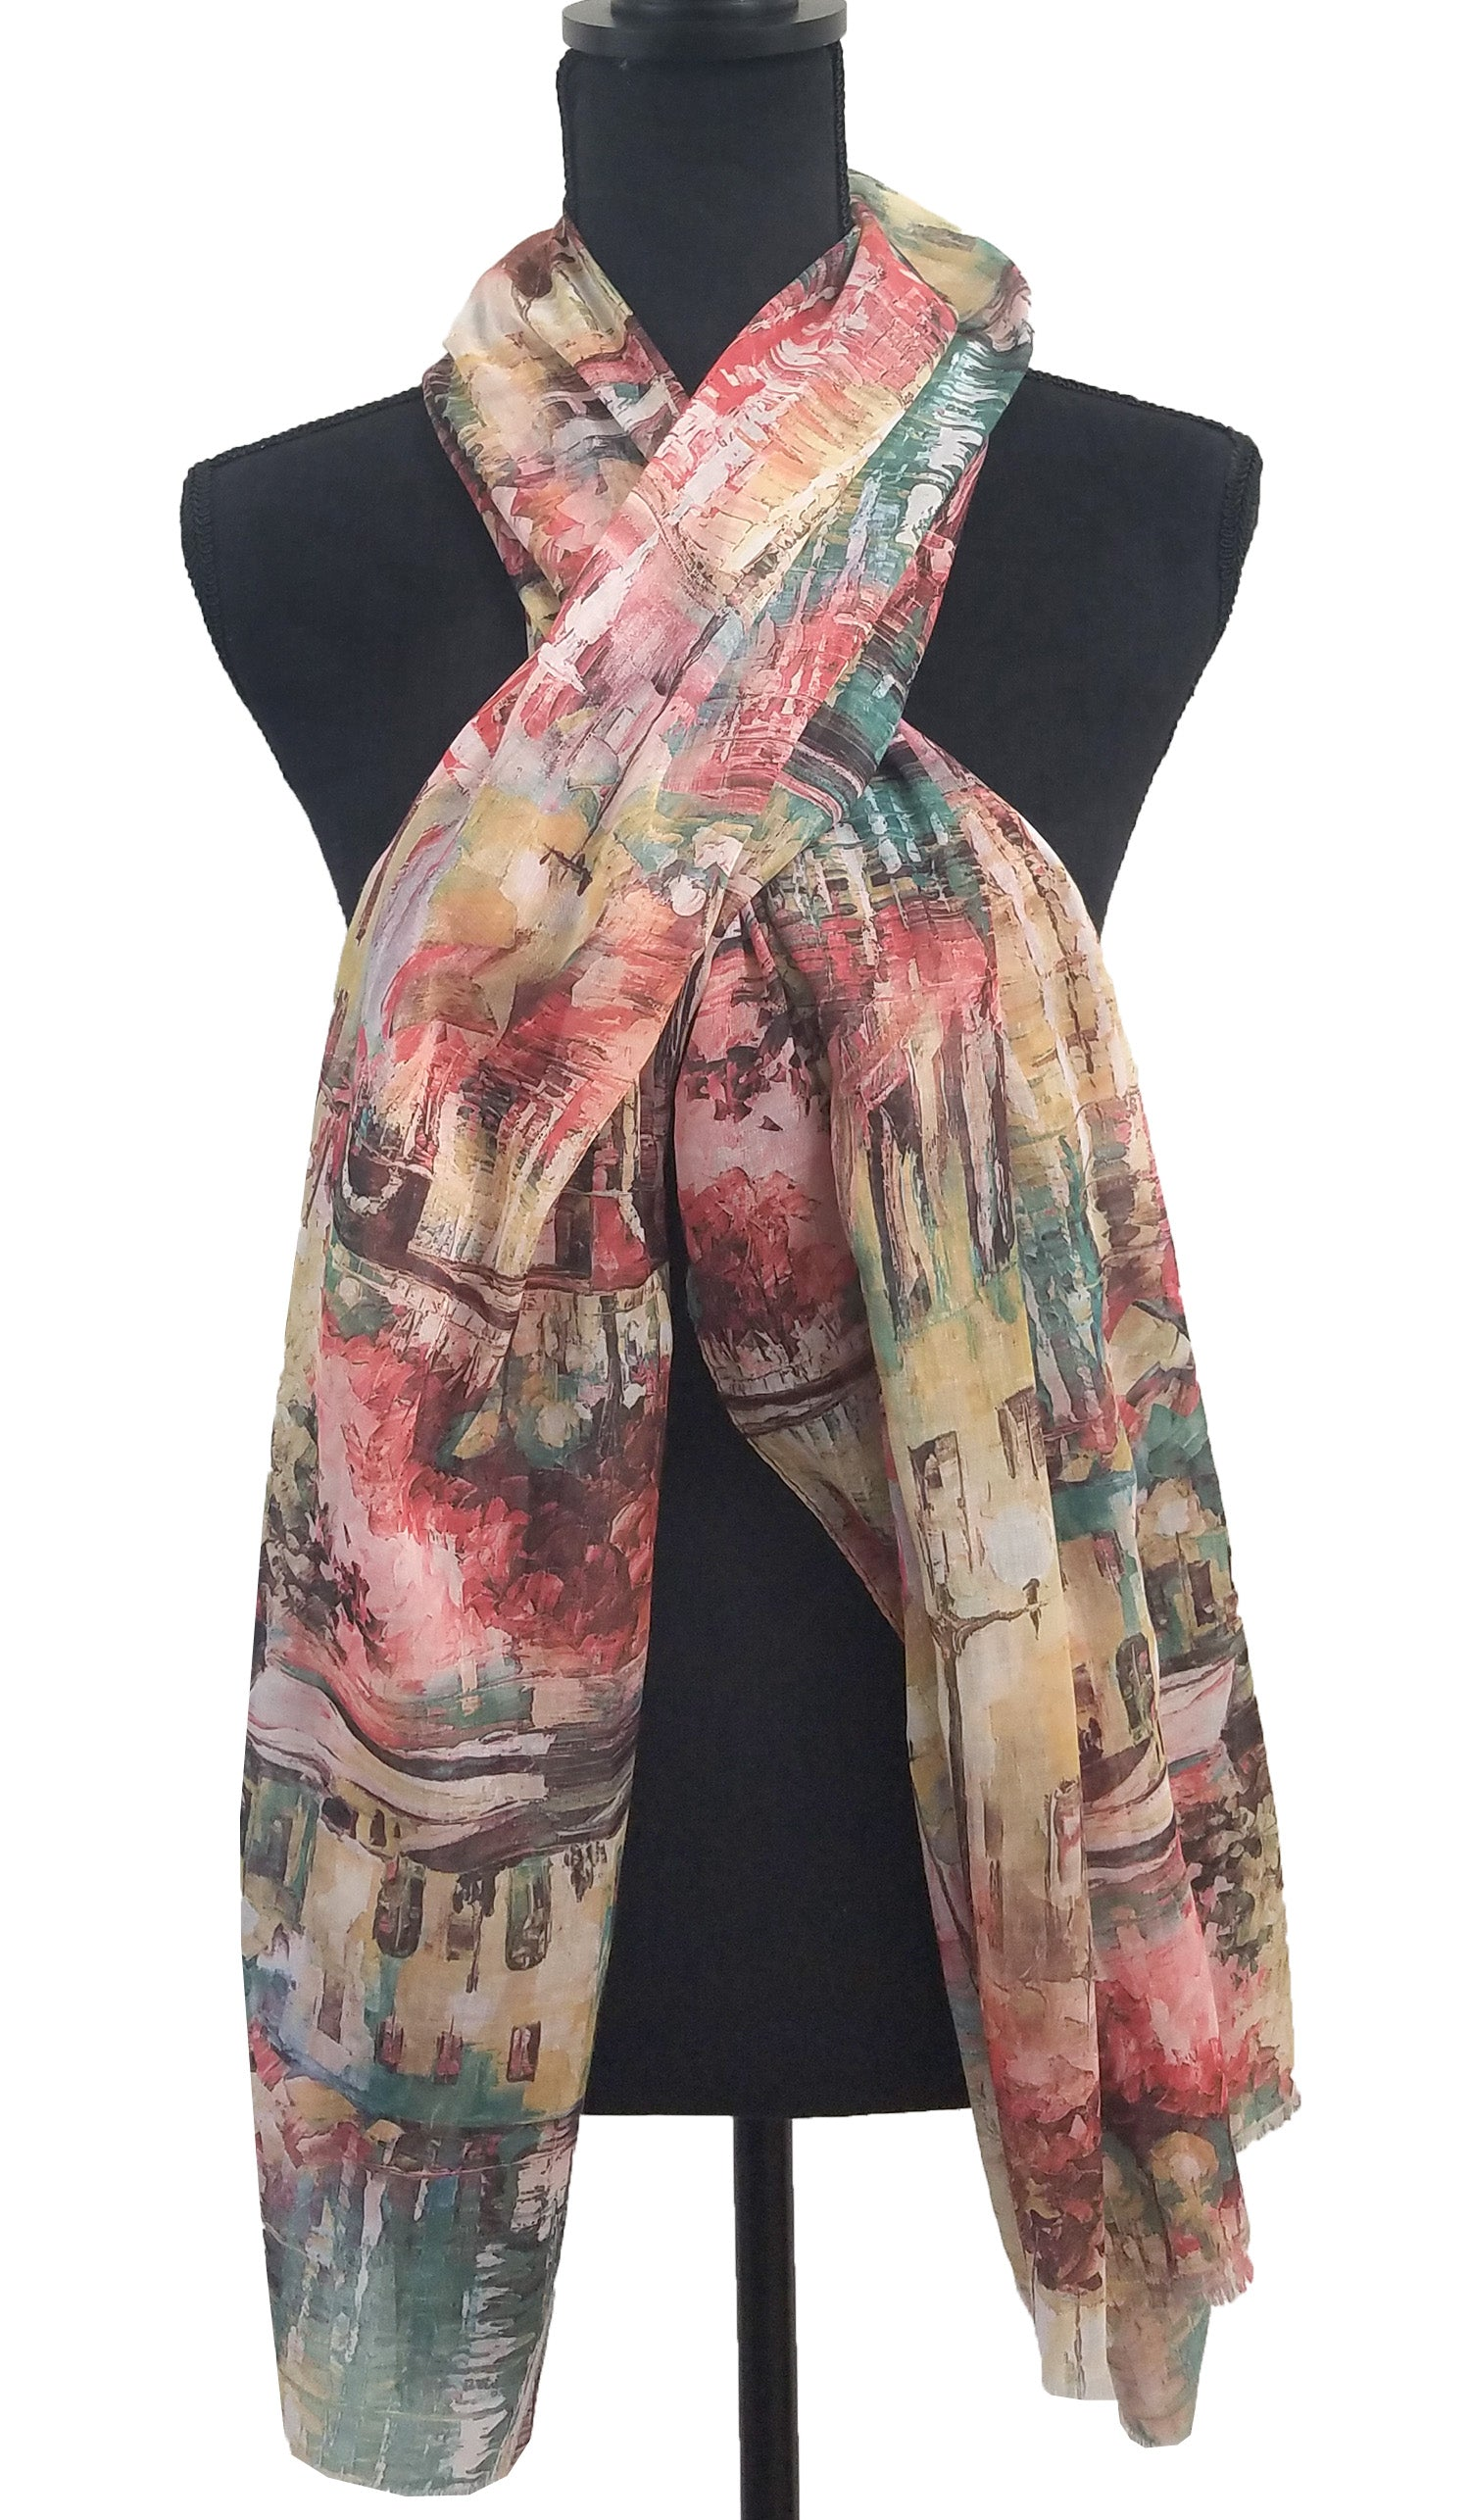 Abstract Print Non slip Wrap Hijab Scarf - Pink Green and Cream